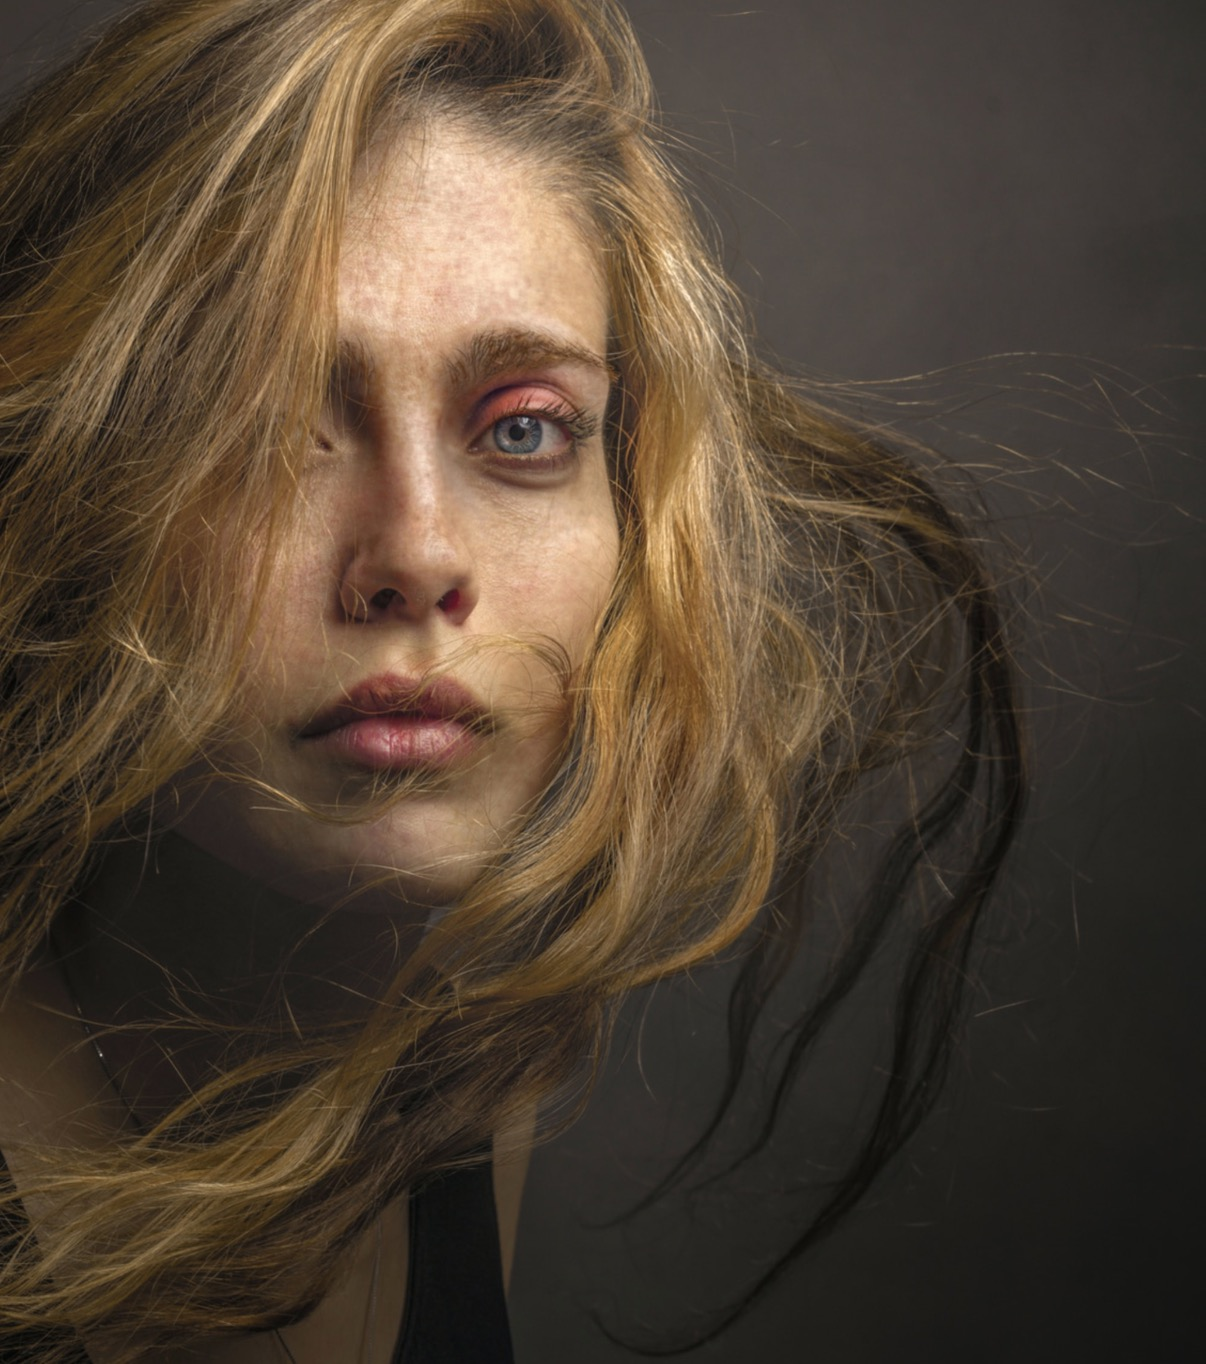 woman with long hair billowing around her face